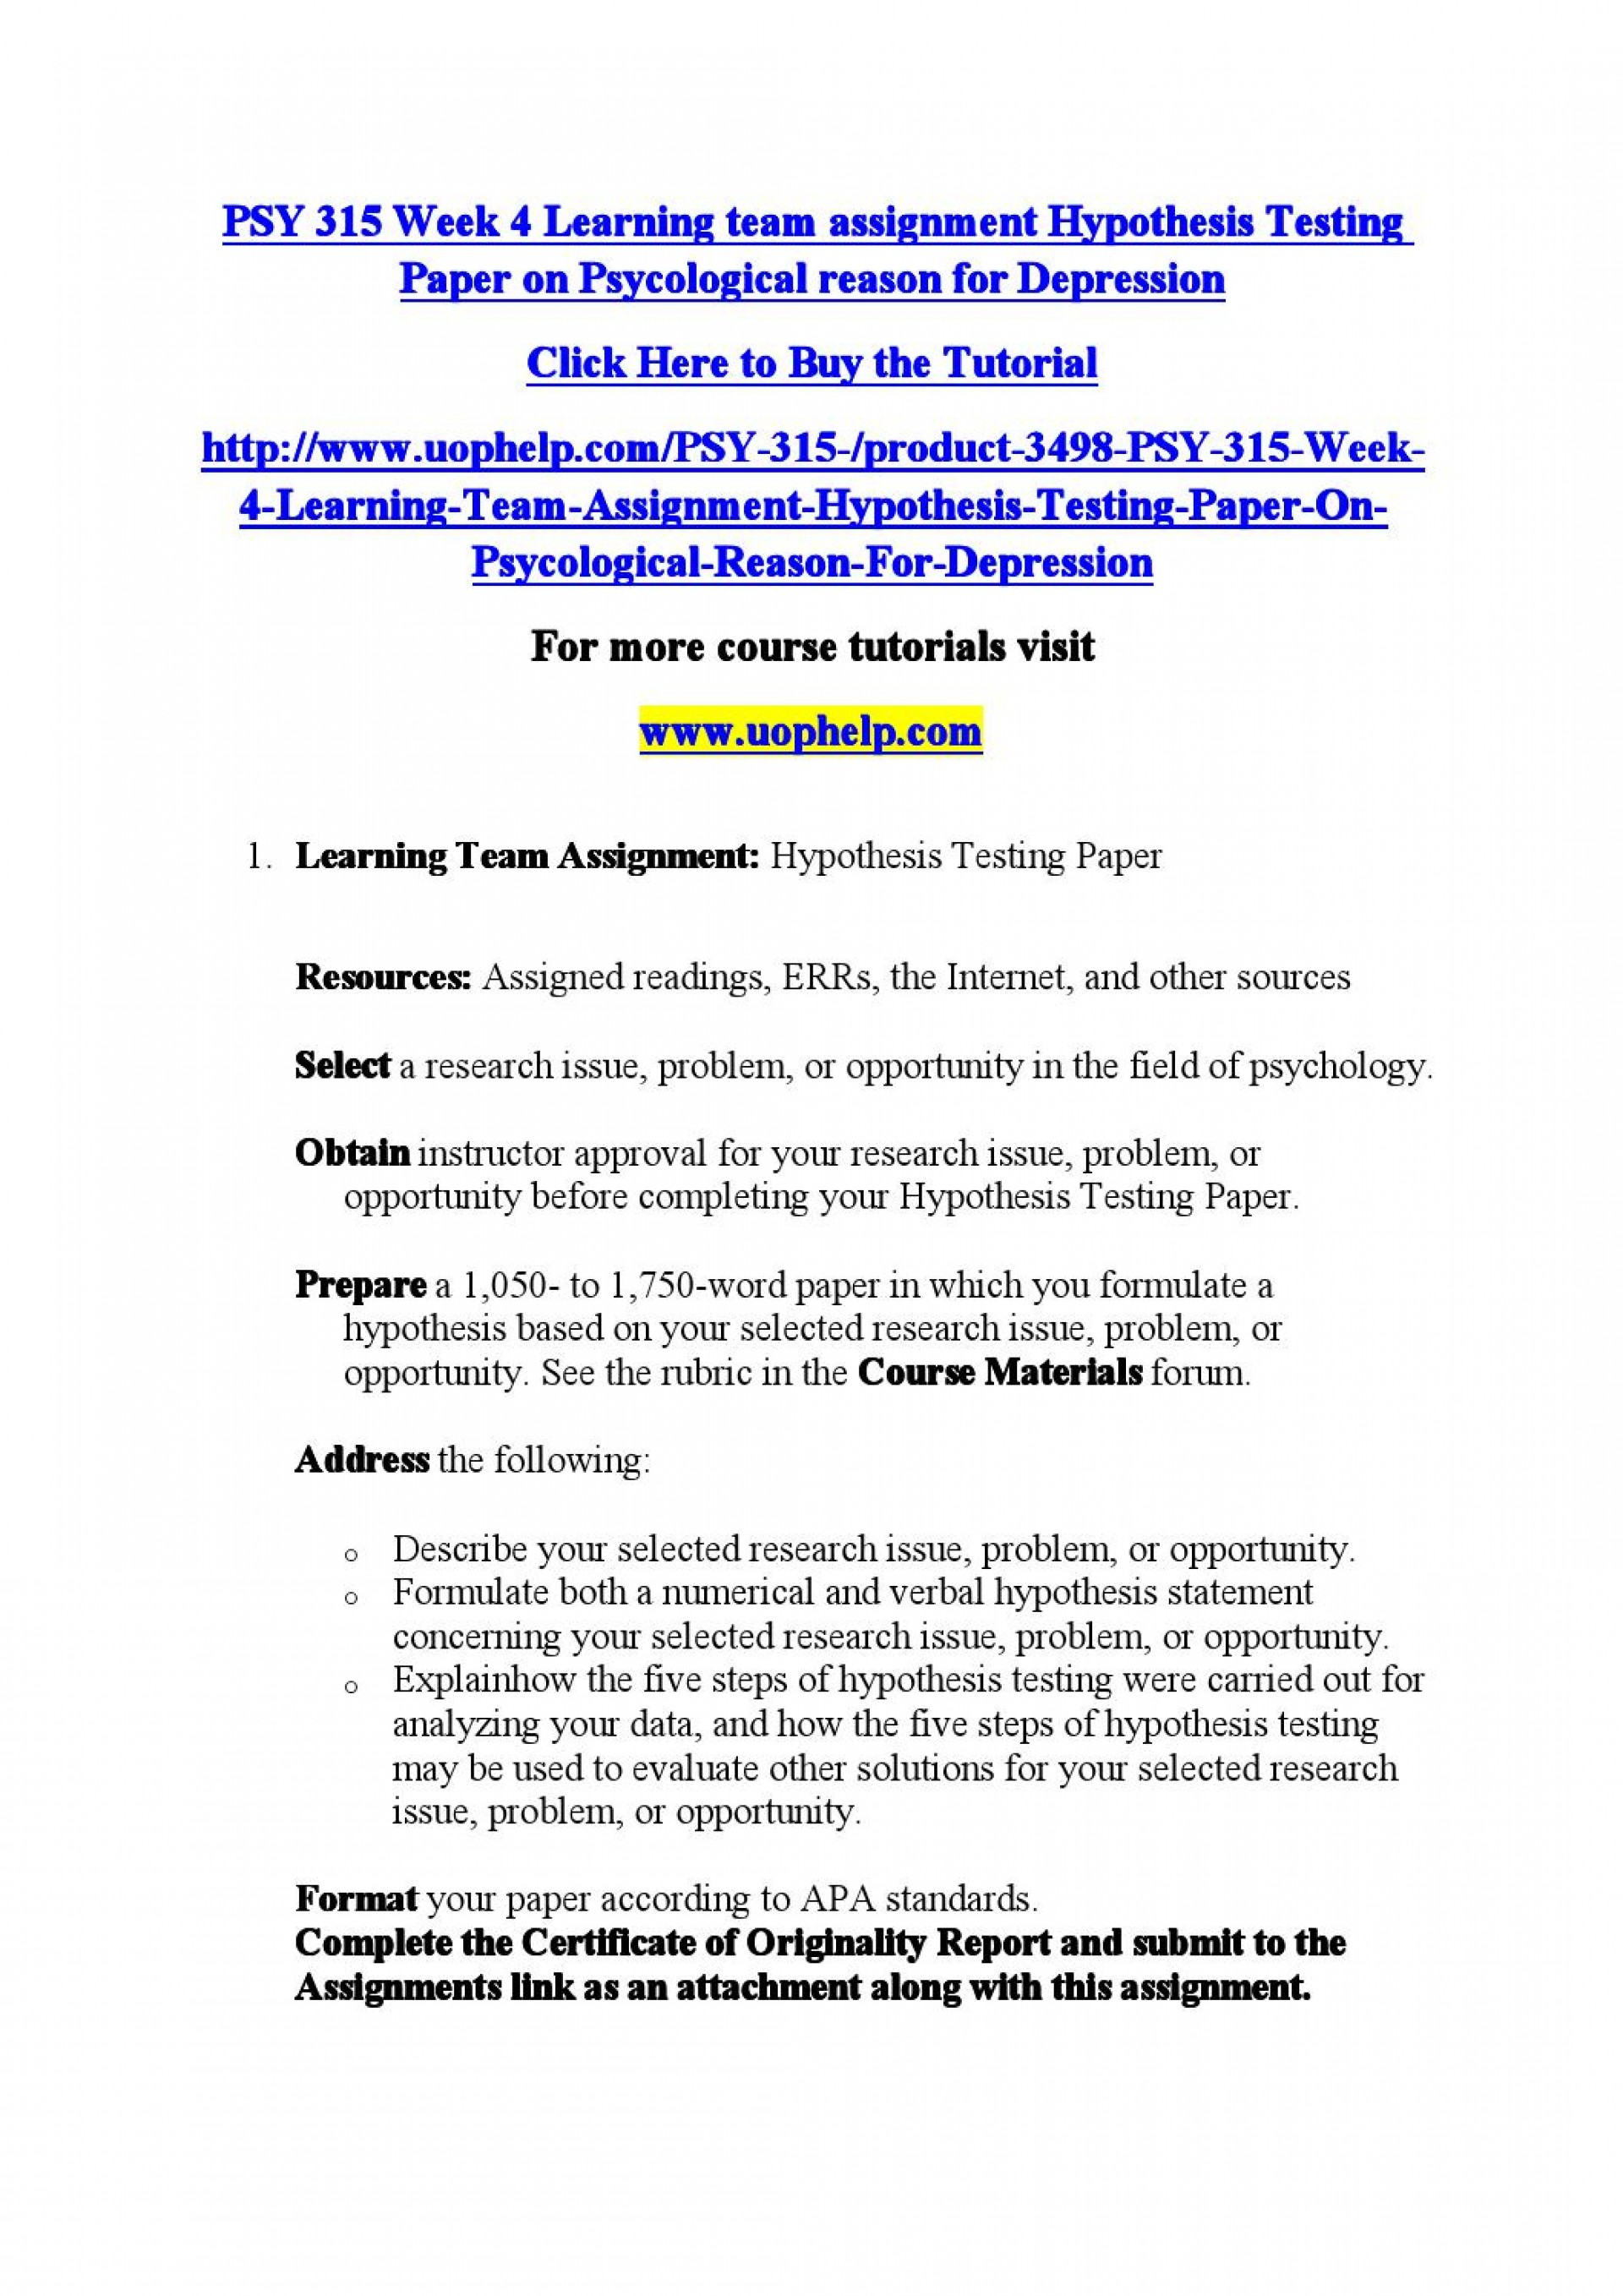 008 Page 1 Research Paper Hypothesis Testing Awesome In Pdf 1920